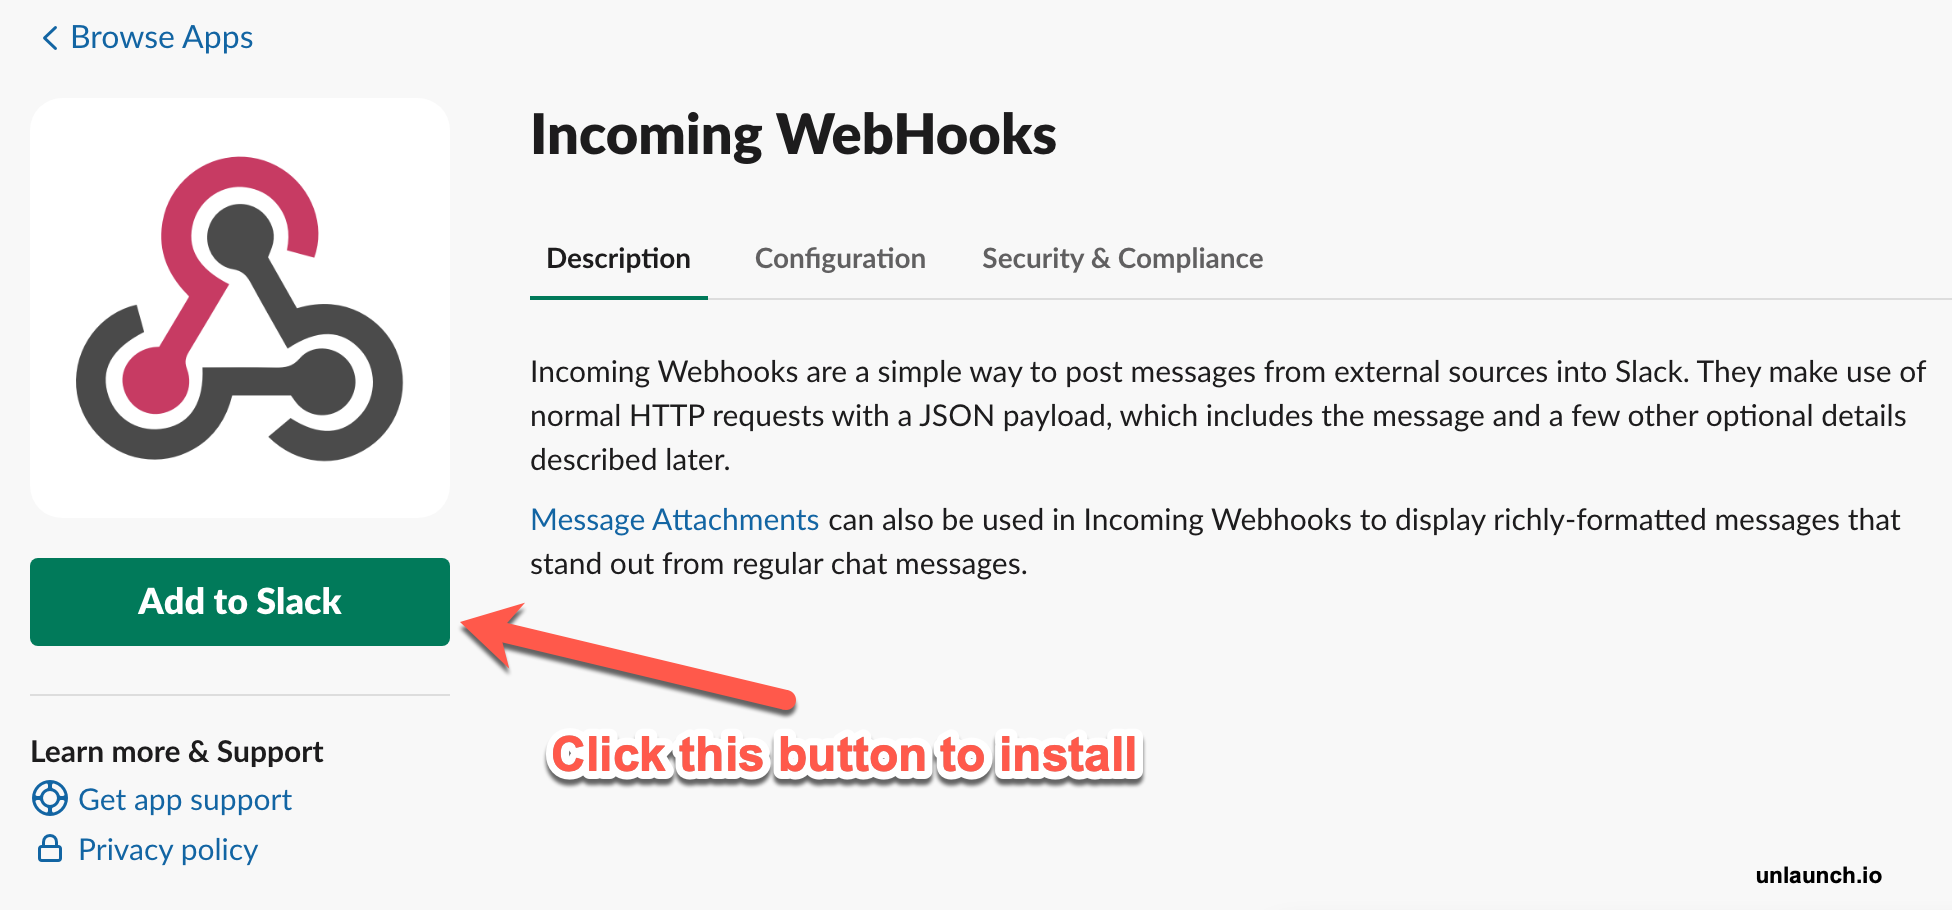 Add Incoming Webhooks by clicking the Add to Slack button